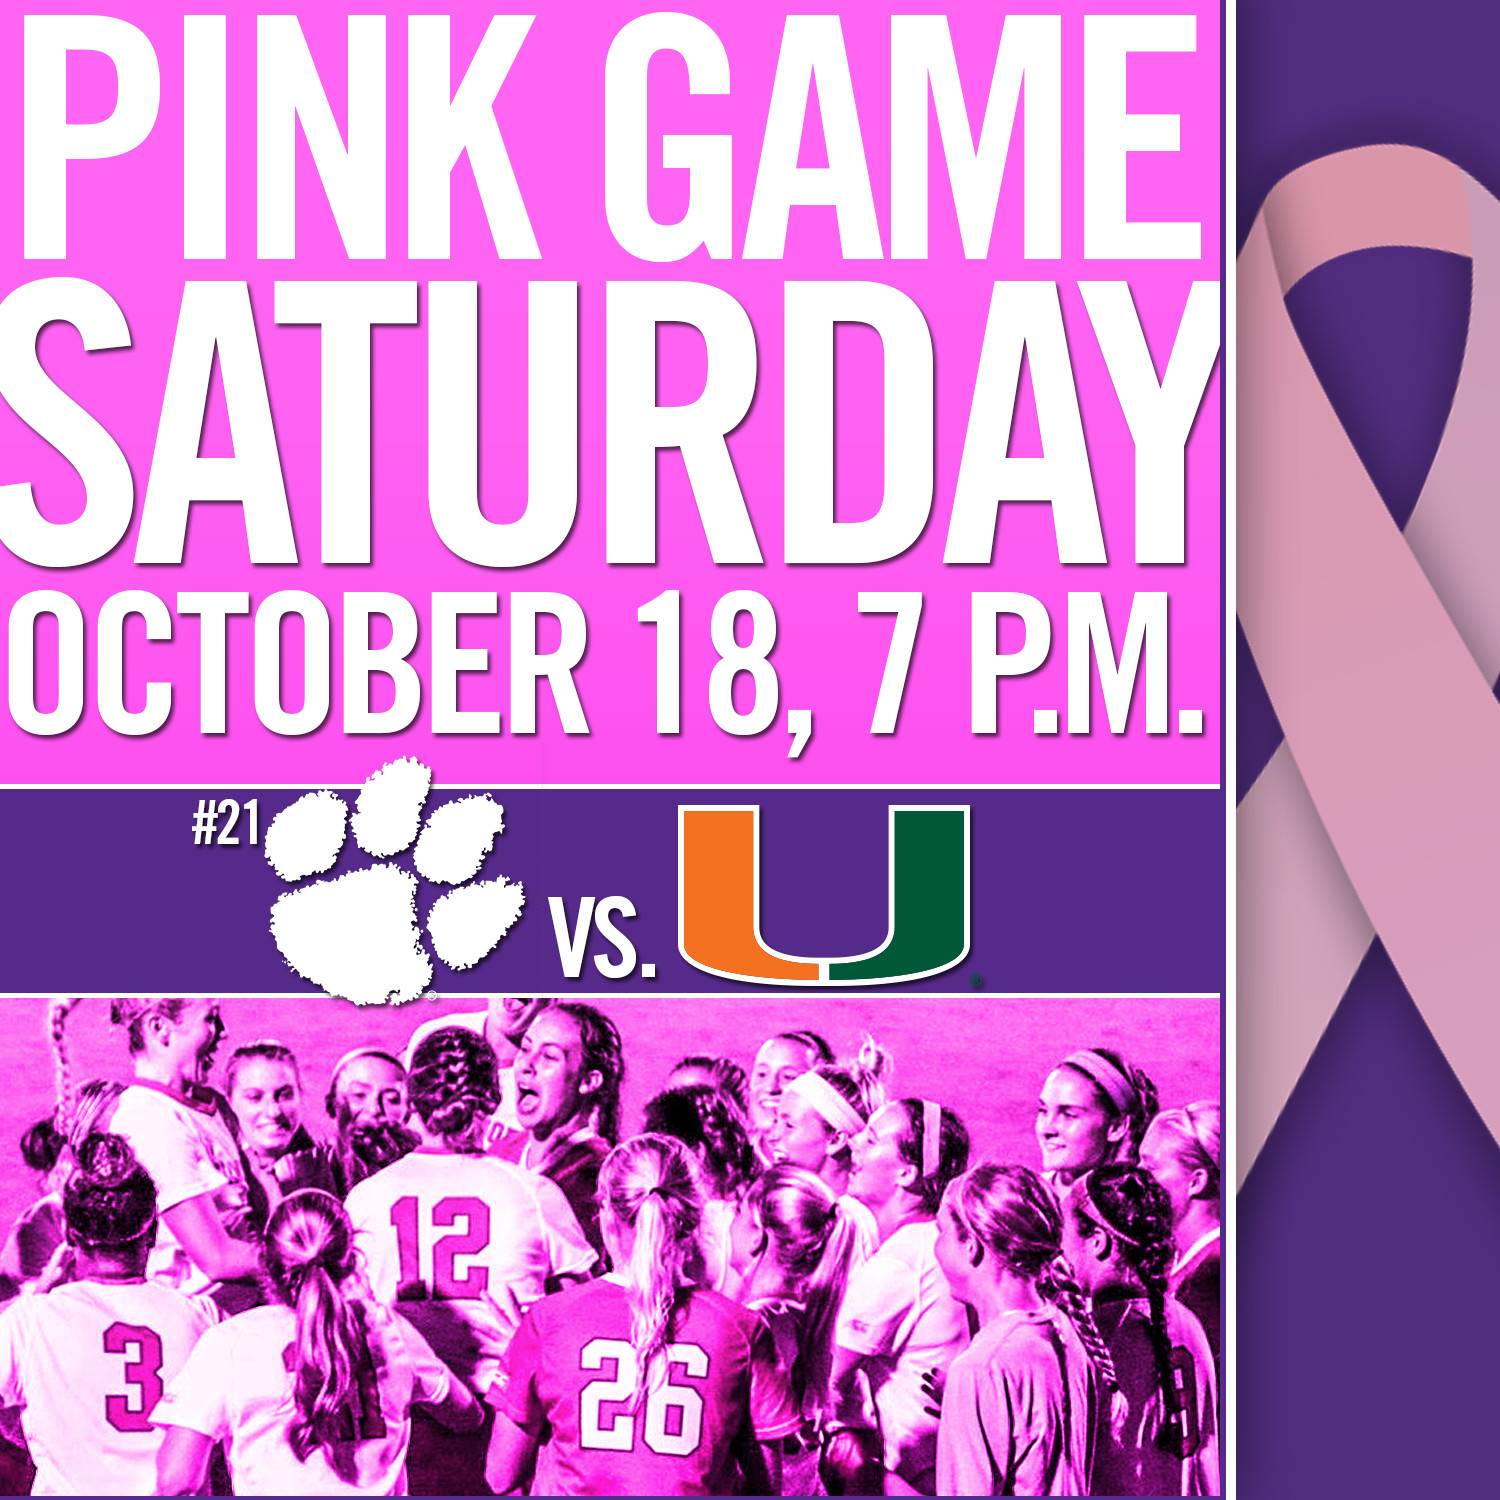 Tigers Host Miami in Pink Game Saturday Night at Historic Riggs Field